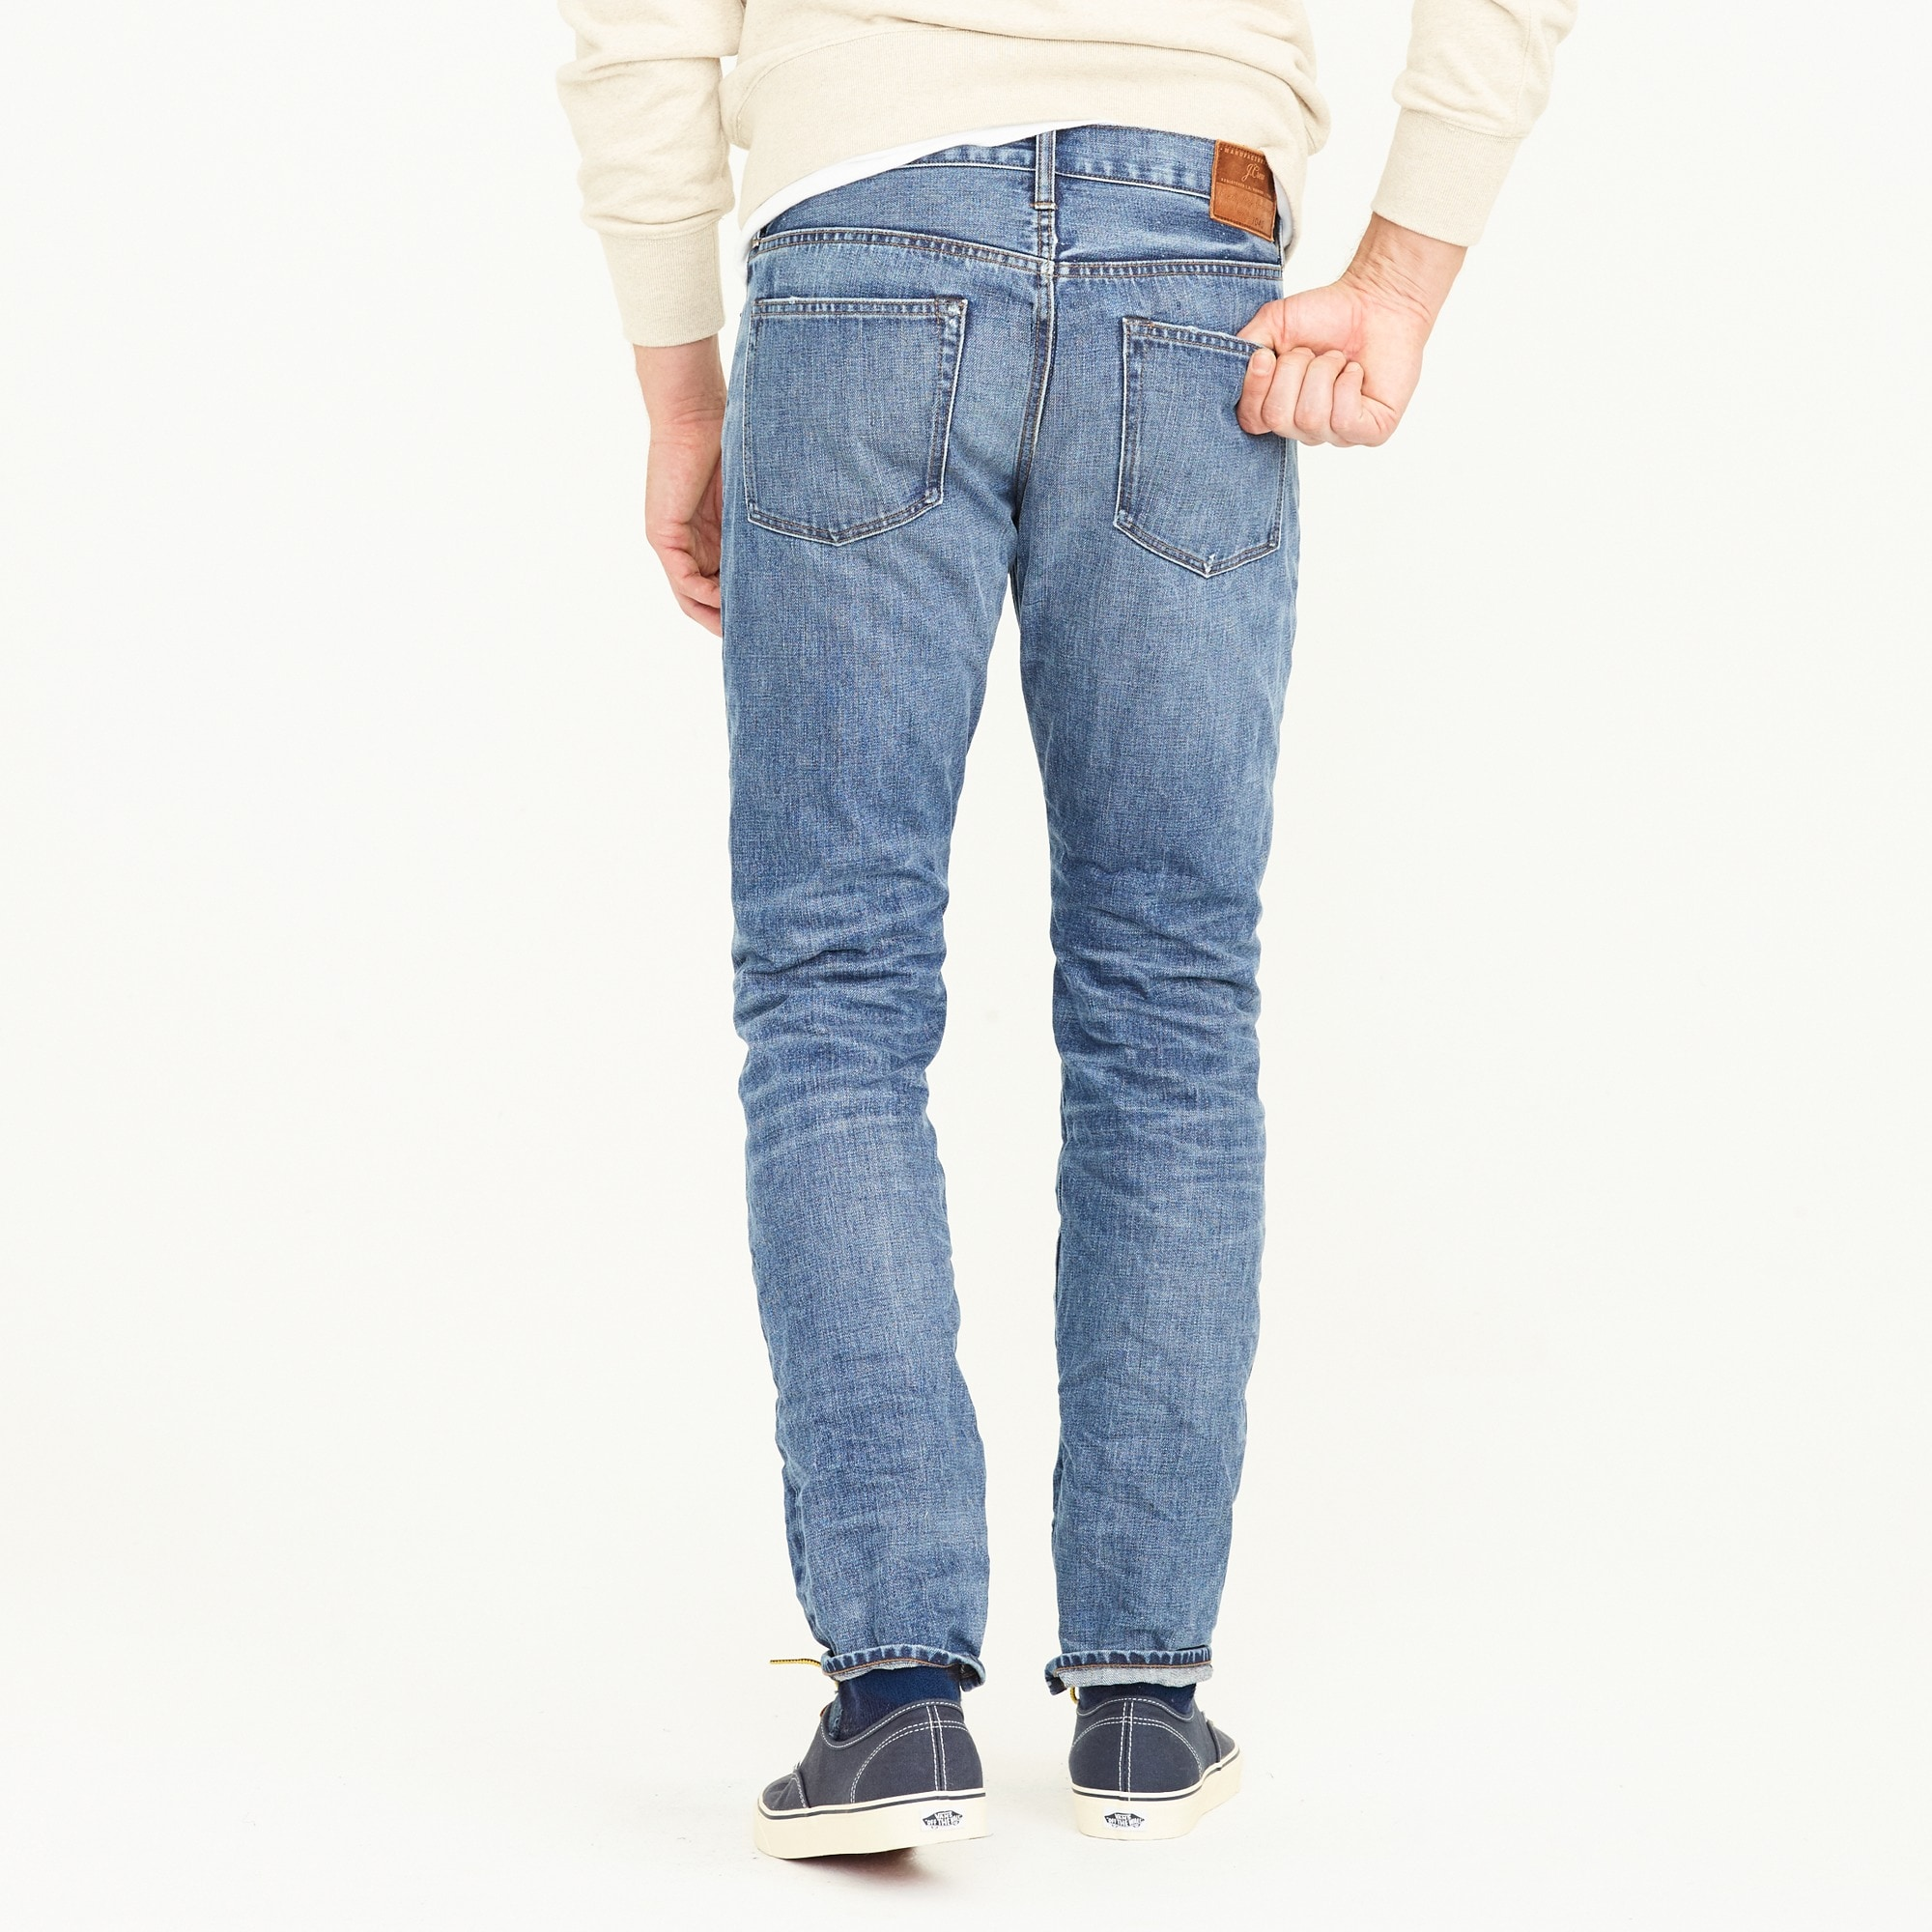 1040 Athletic jean in Sutton wash